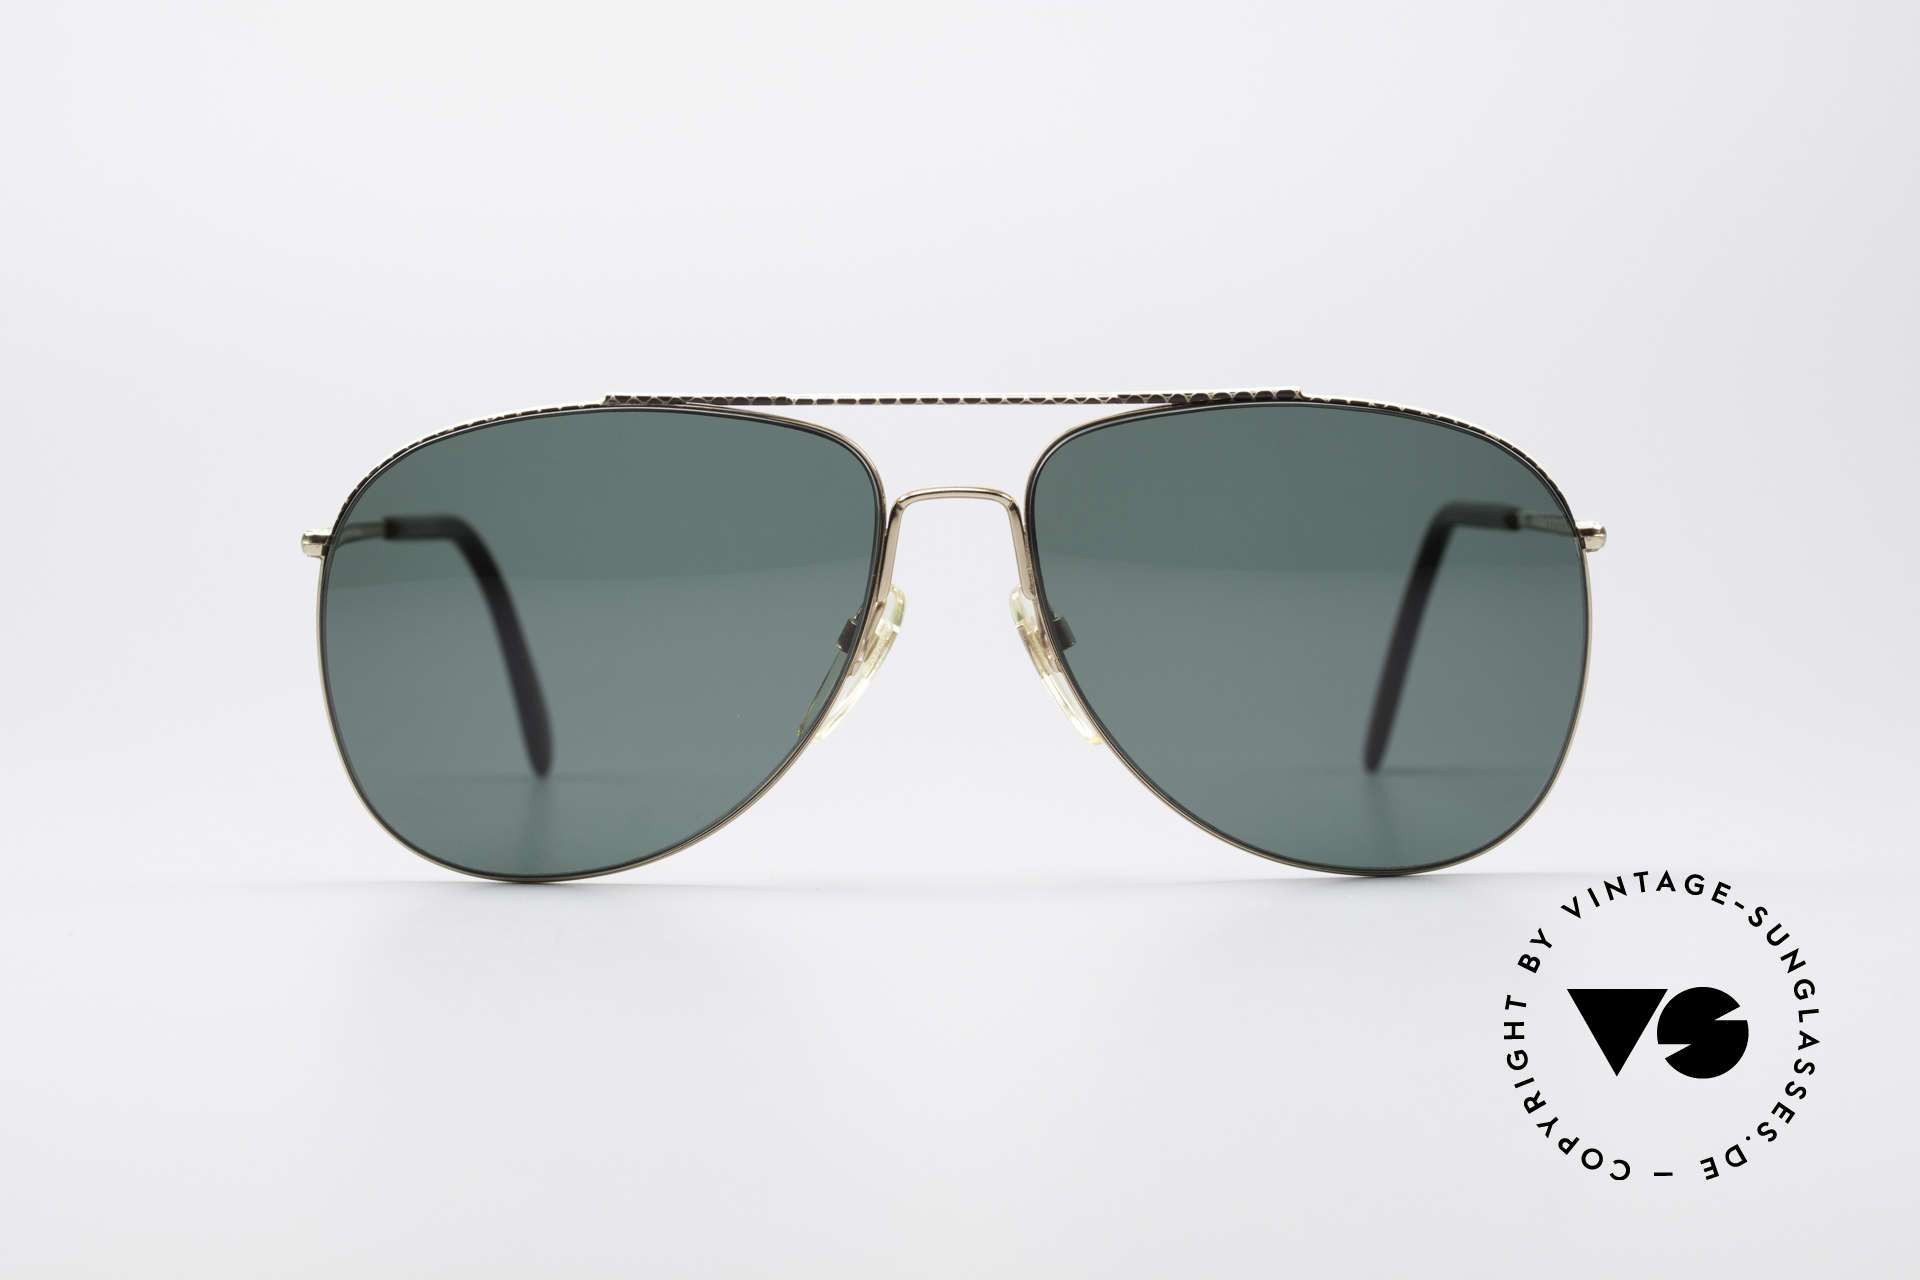 c6c4f600b63 You may also like these glasses. Neostyle Jet 16 Extraordinary 80 s Glasses  Details